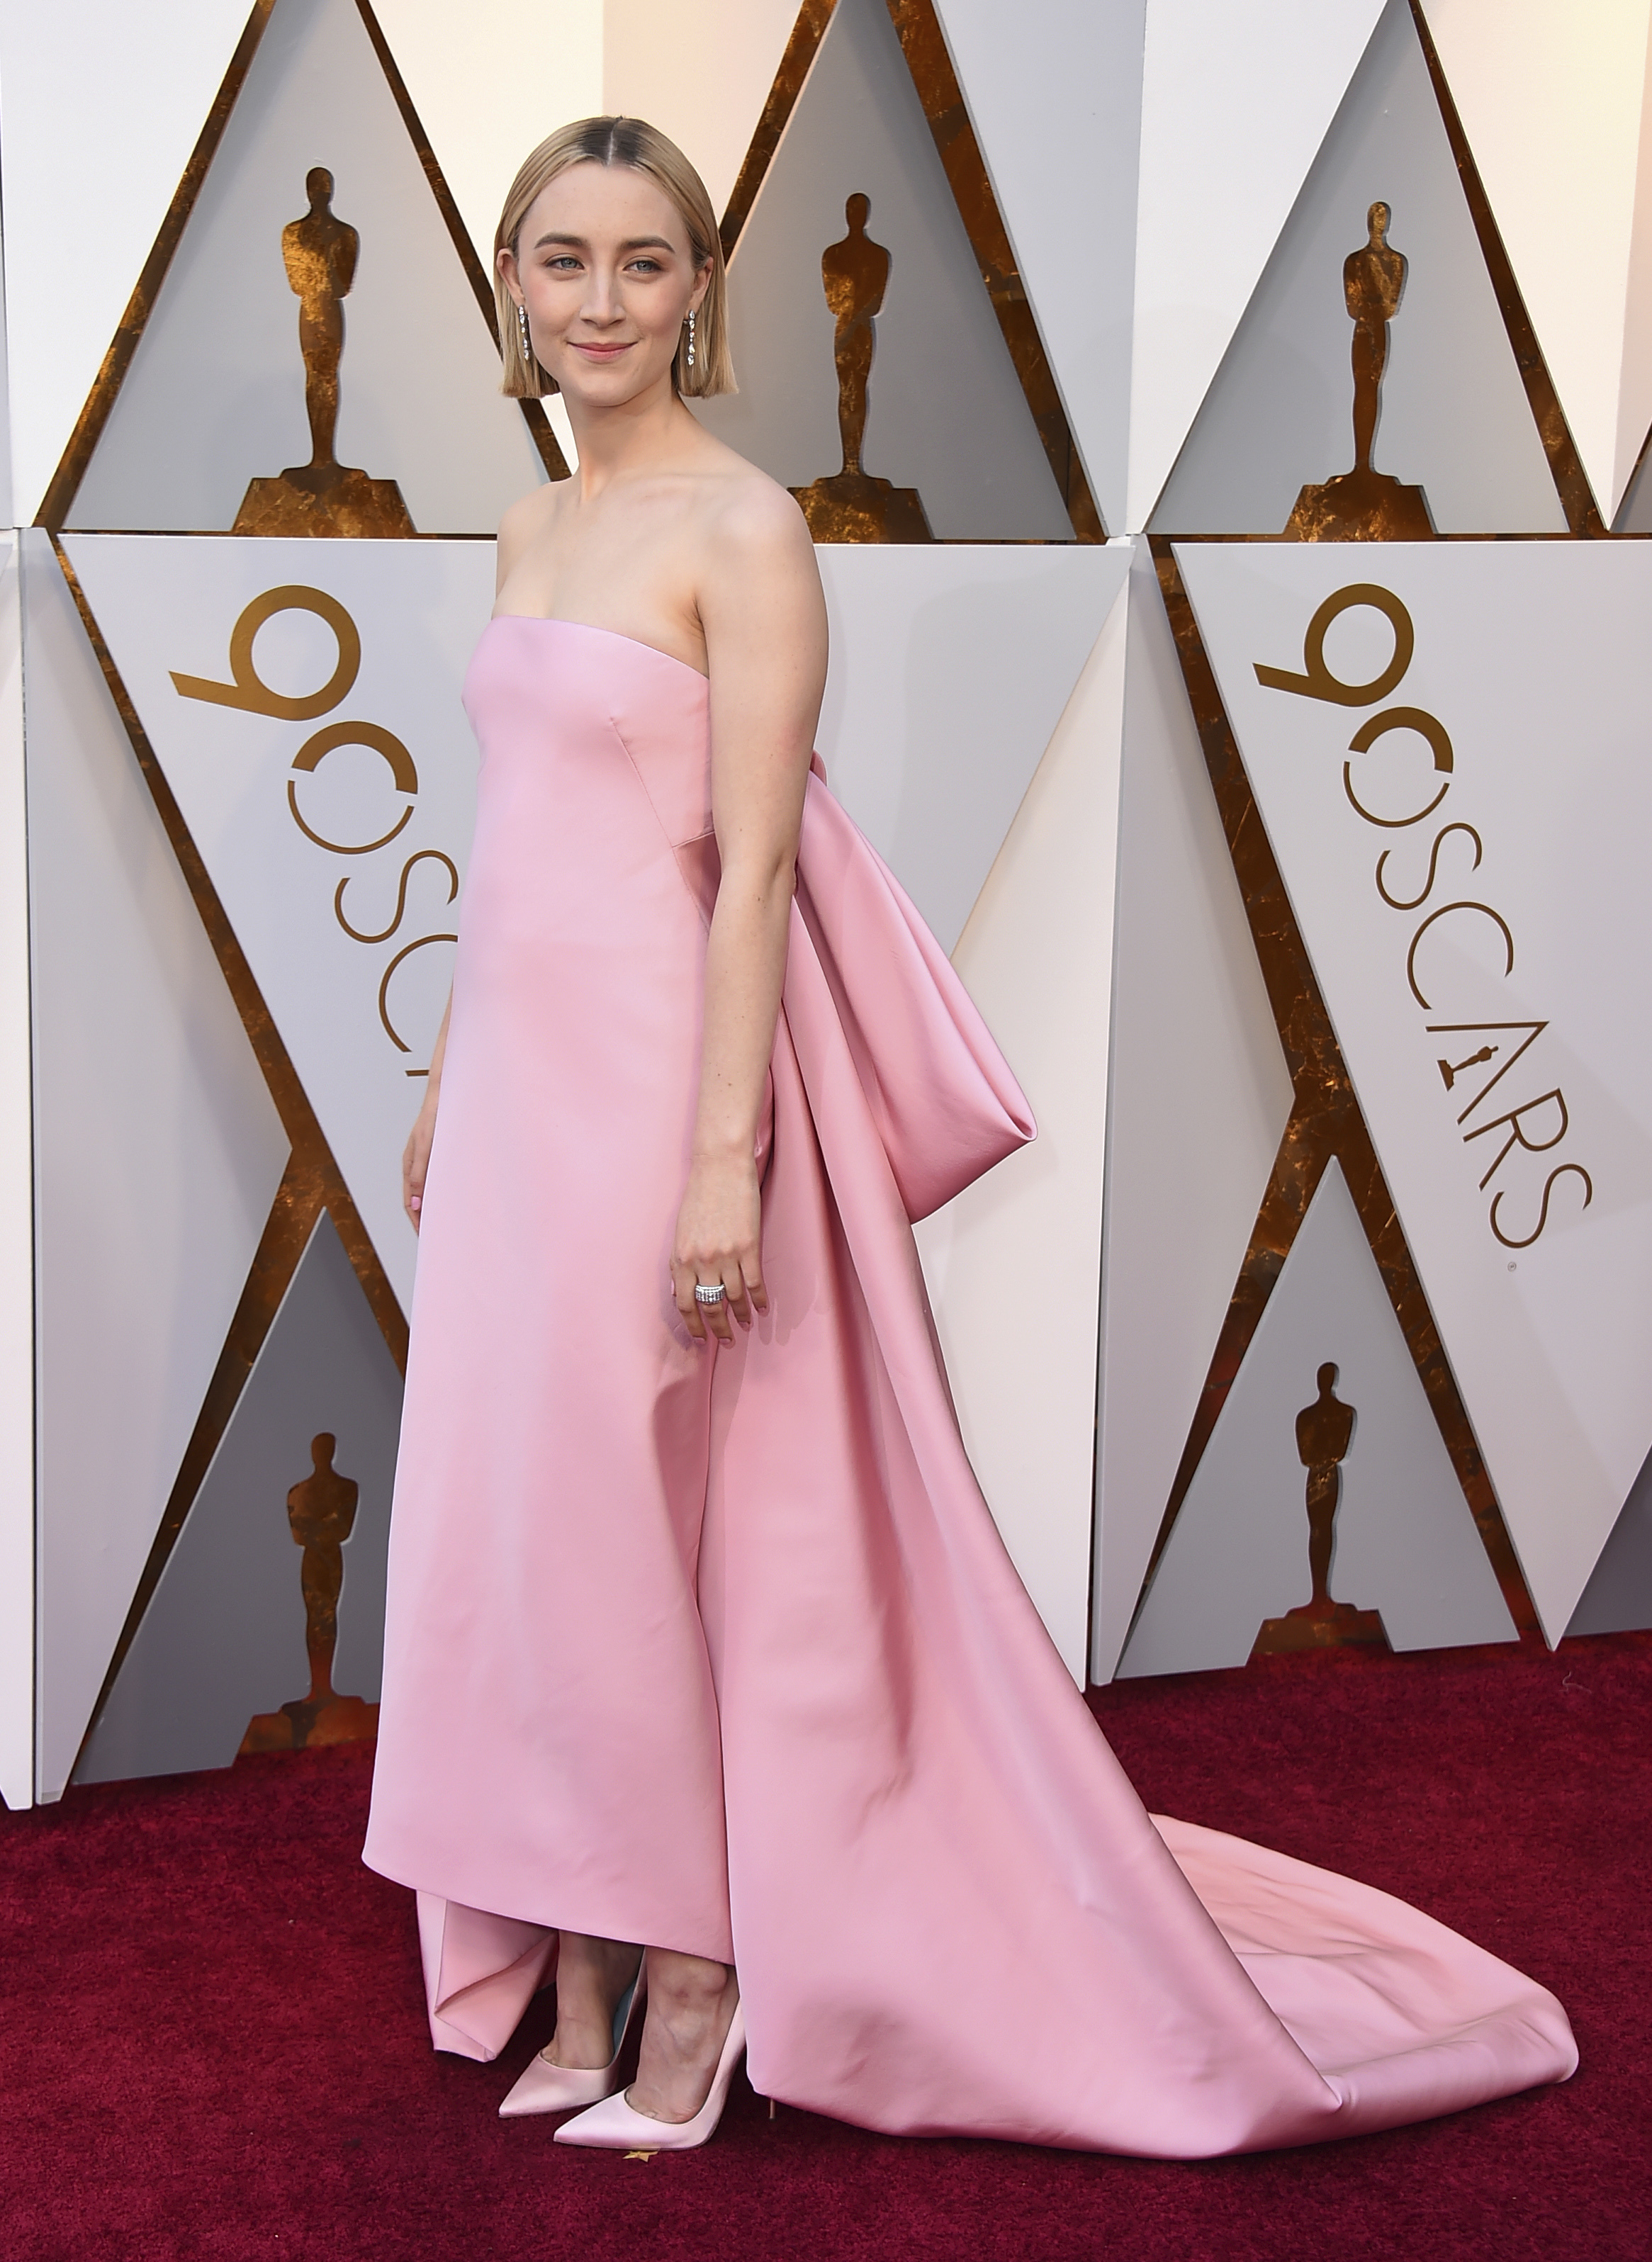 "<div class=""meta image-caption""><div class=""origin-logo origin-image none""><span>none</span></div><span class=""caption-text"">Best Actress nominee Saoirse Ronan of ''Lady Bird'' arrives at the Oscars on Sunday, March 4, 2018, at the Dolby Theatre in Los Angeles. (Jordan Strauss/Invision/AP)</span></div>"